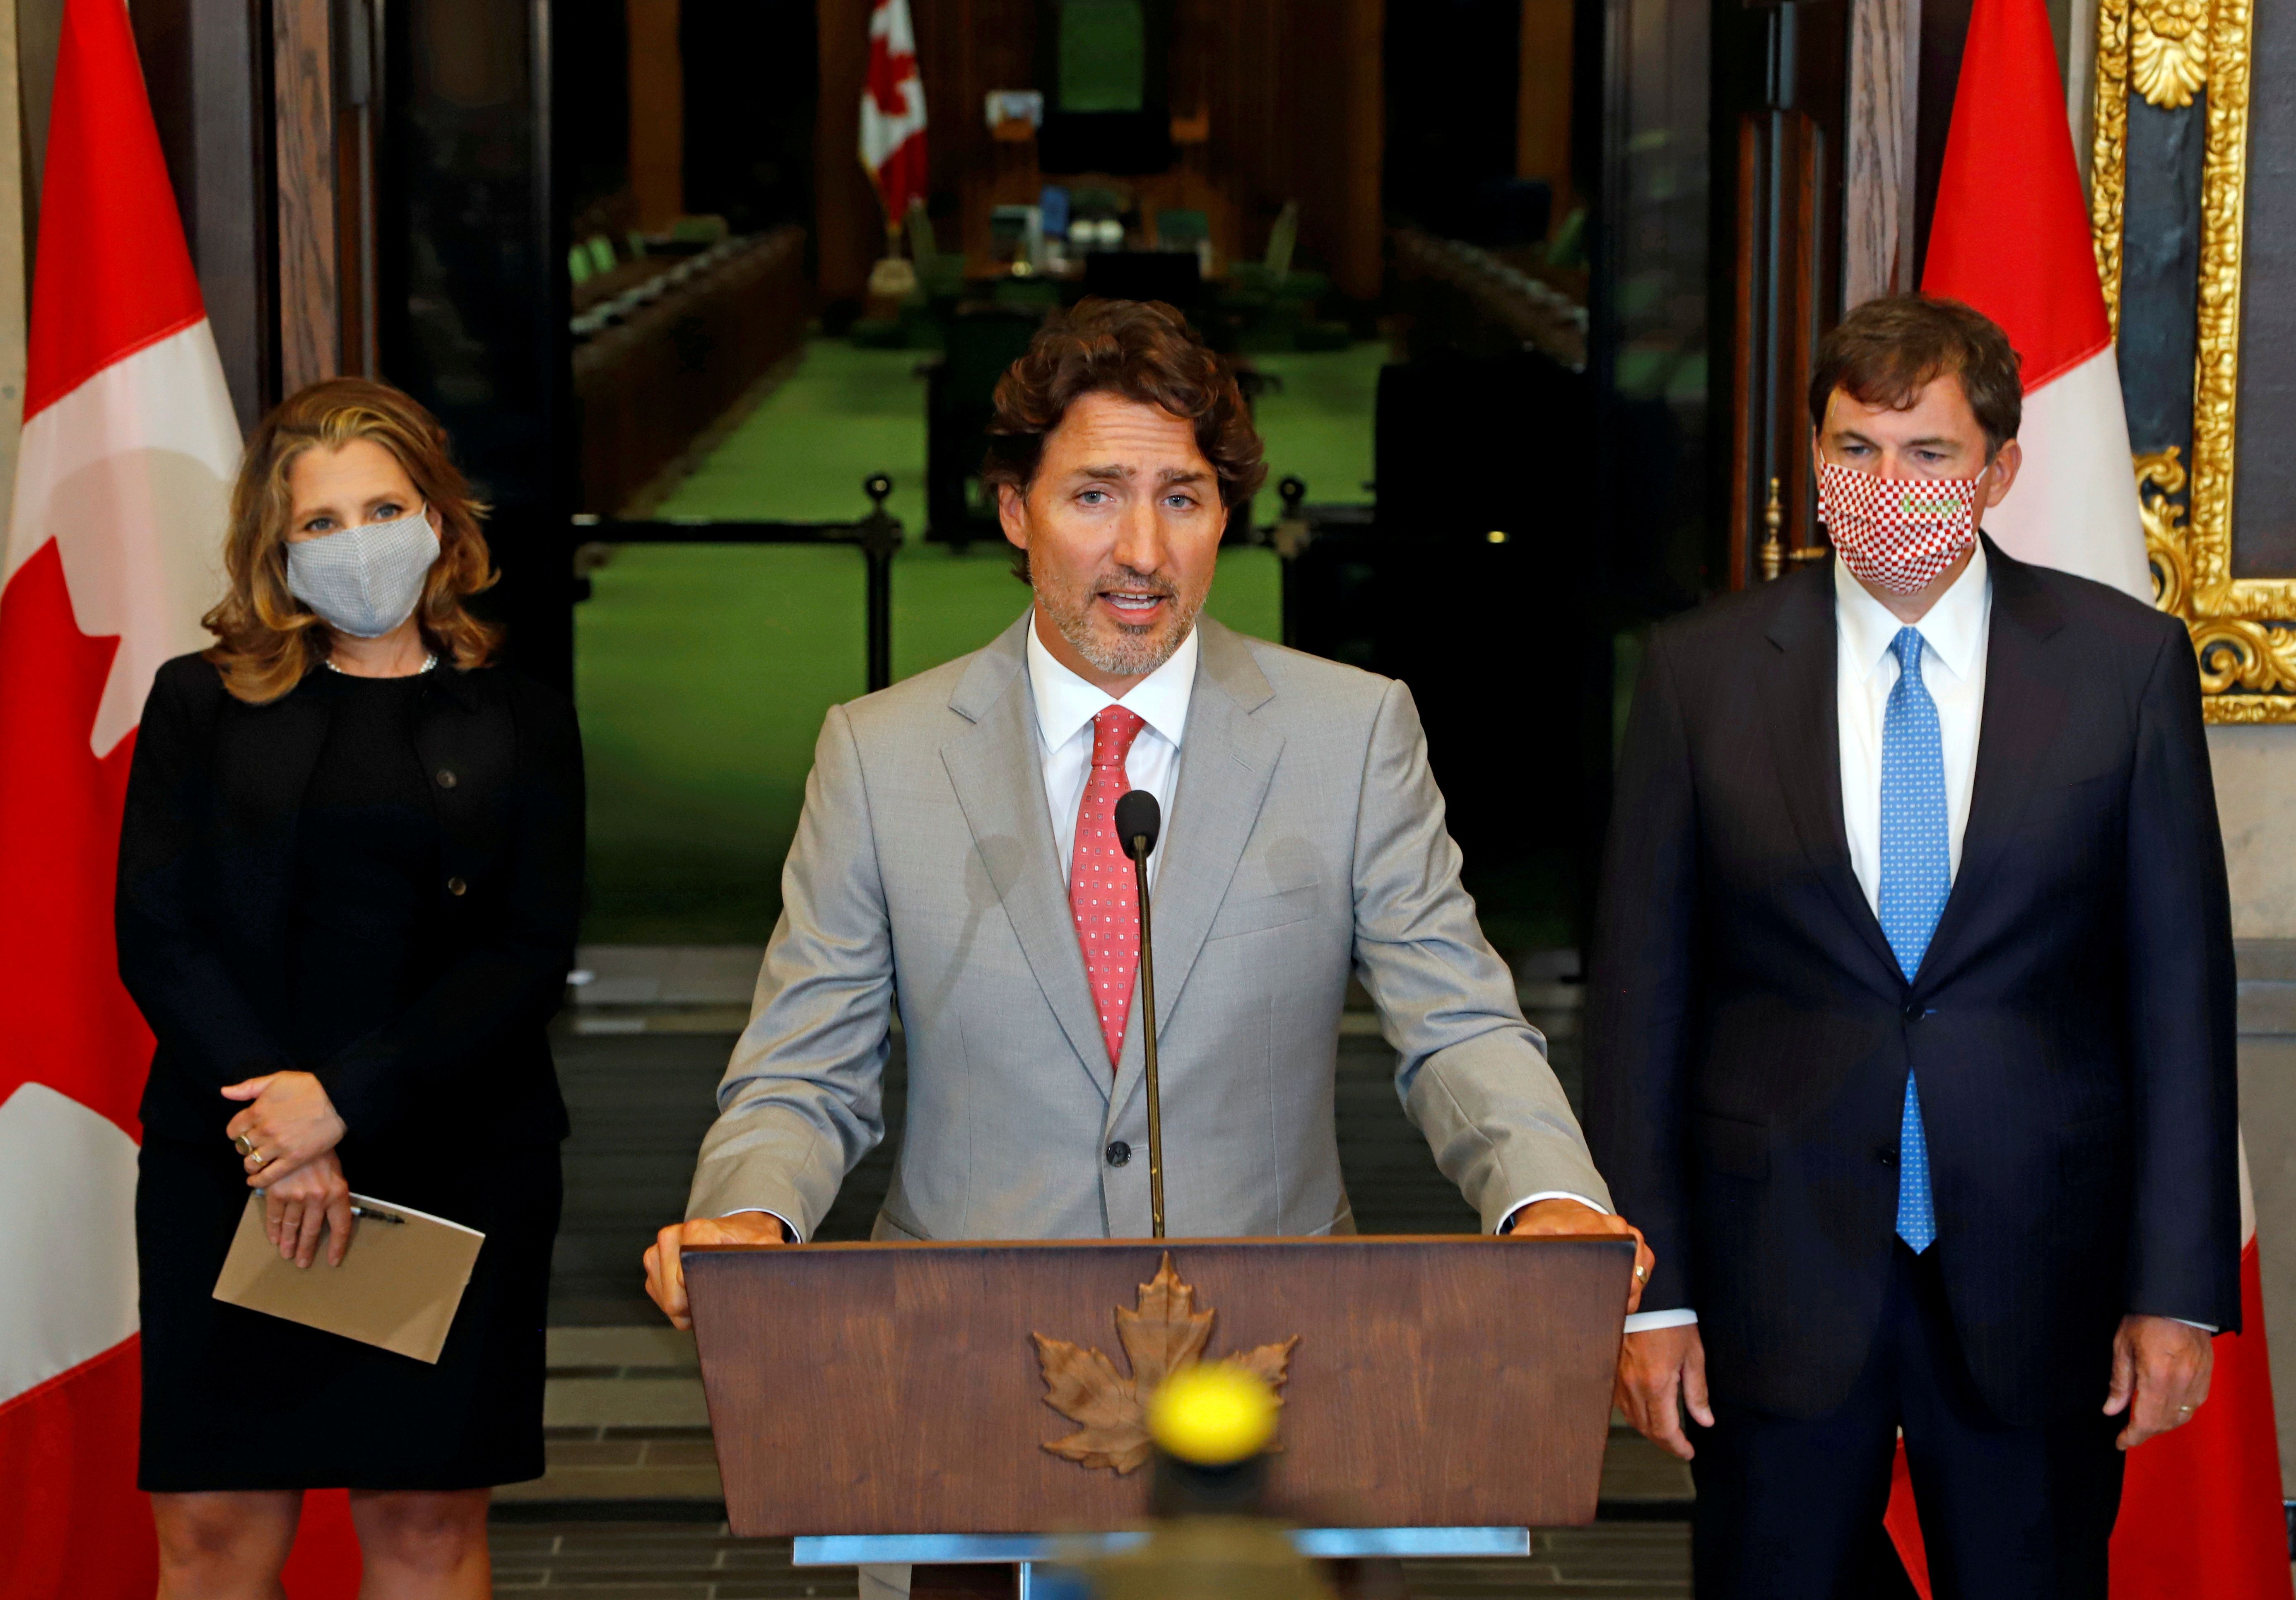 Canadian Prime Minister Justin Trudeau speaks to reporters next to Canadian Deputy Prime Minister and Finance Minister Chrystia Freeland and Minister of Intergovernmental Affairs Dominic LeBlanc on Parliament Hill in Ottawa, Ontario, Canada August 18, 2020. REUTERS/Patrick Doyle/File Photo